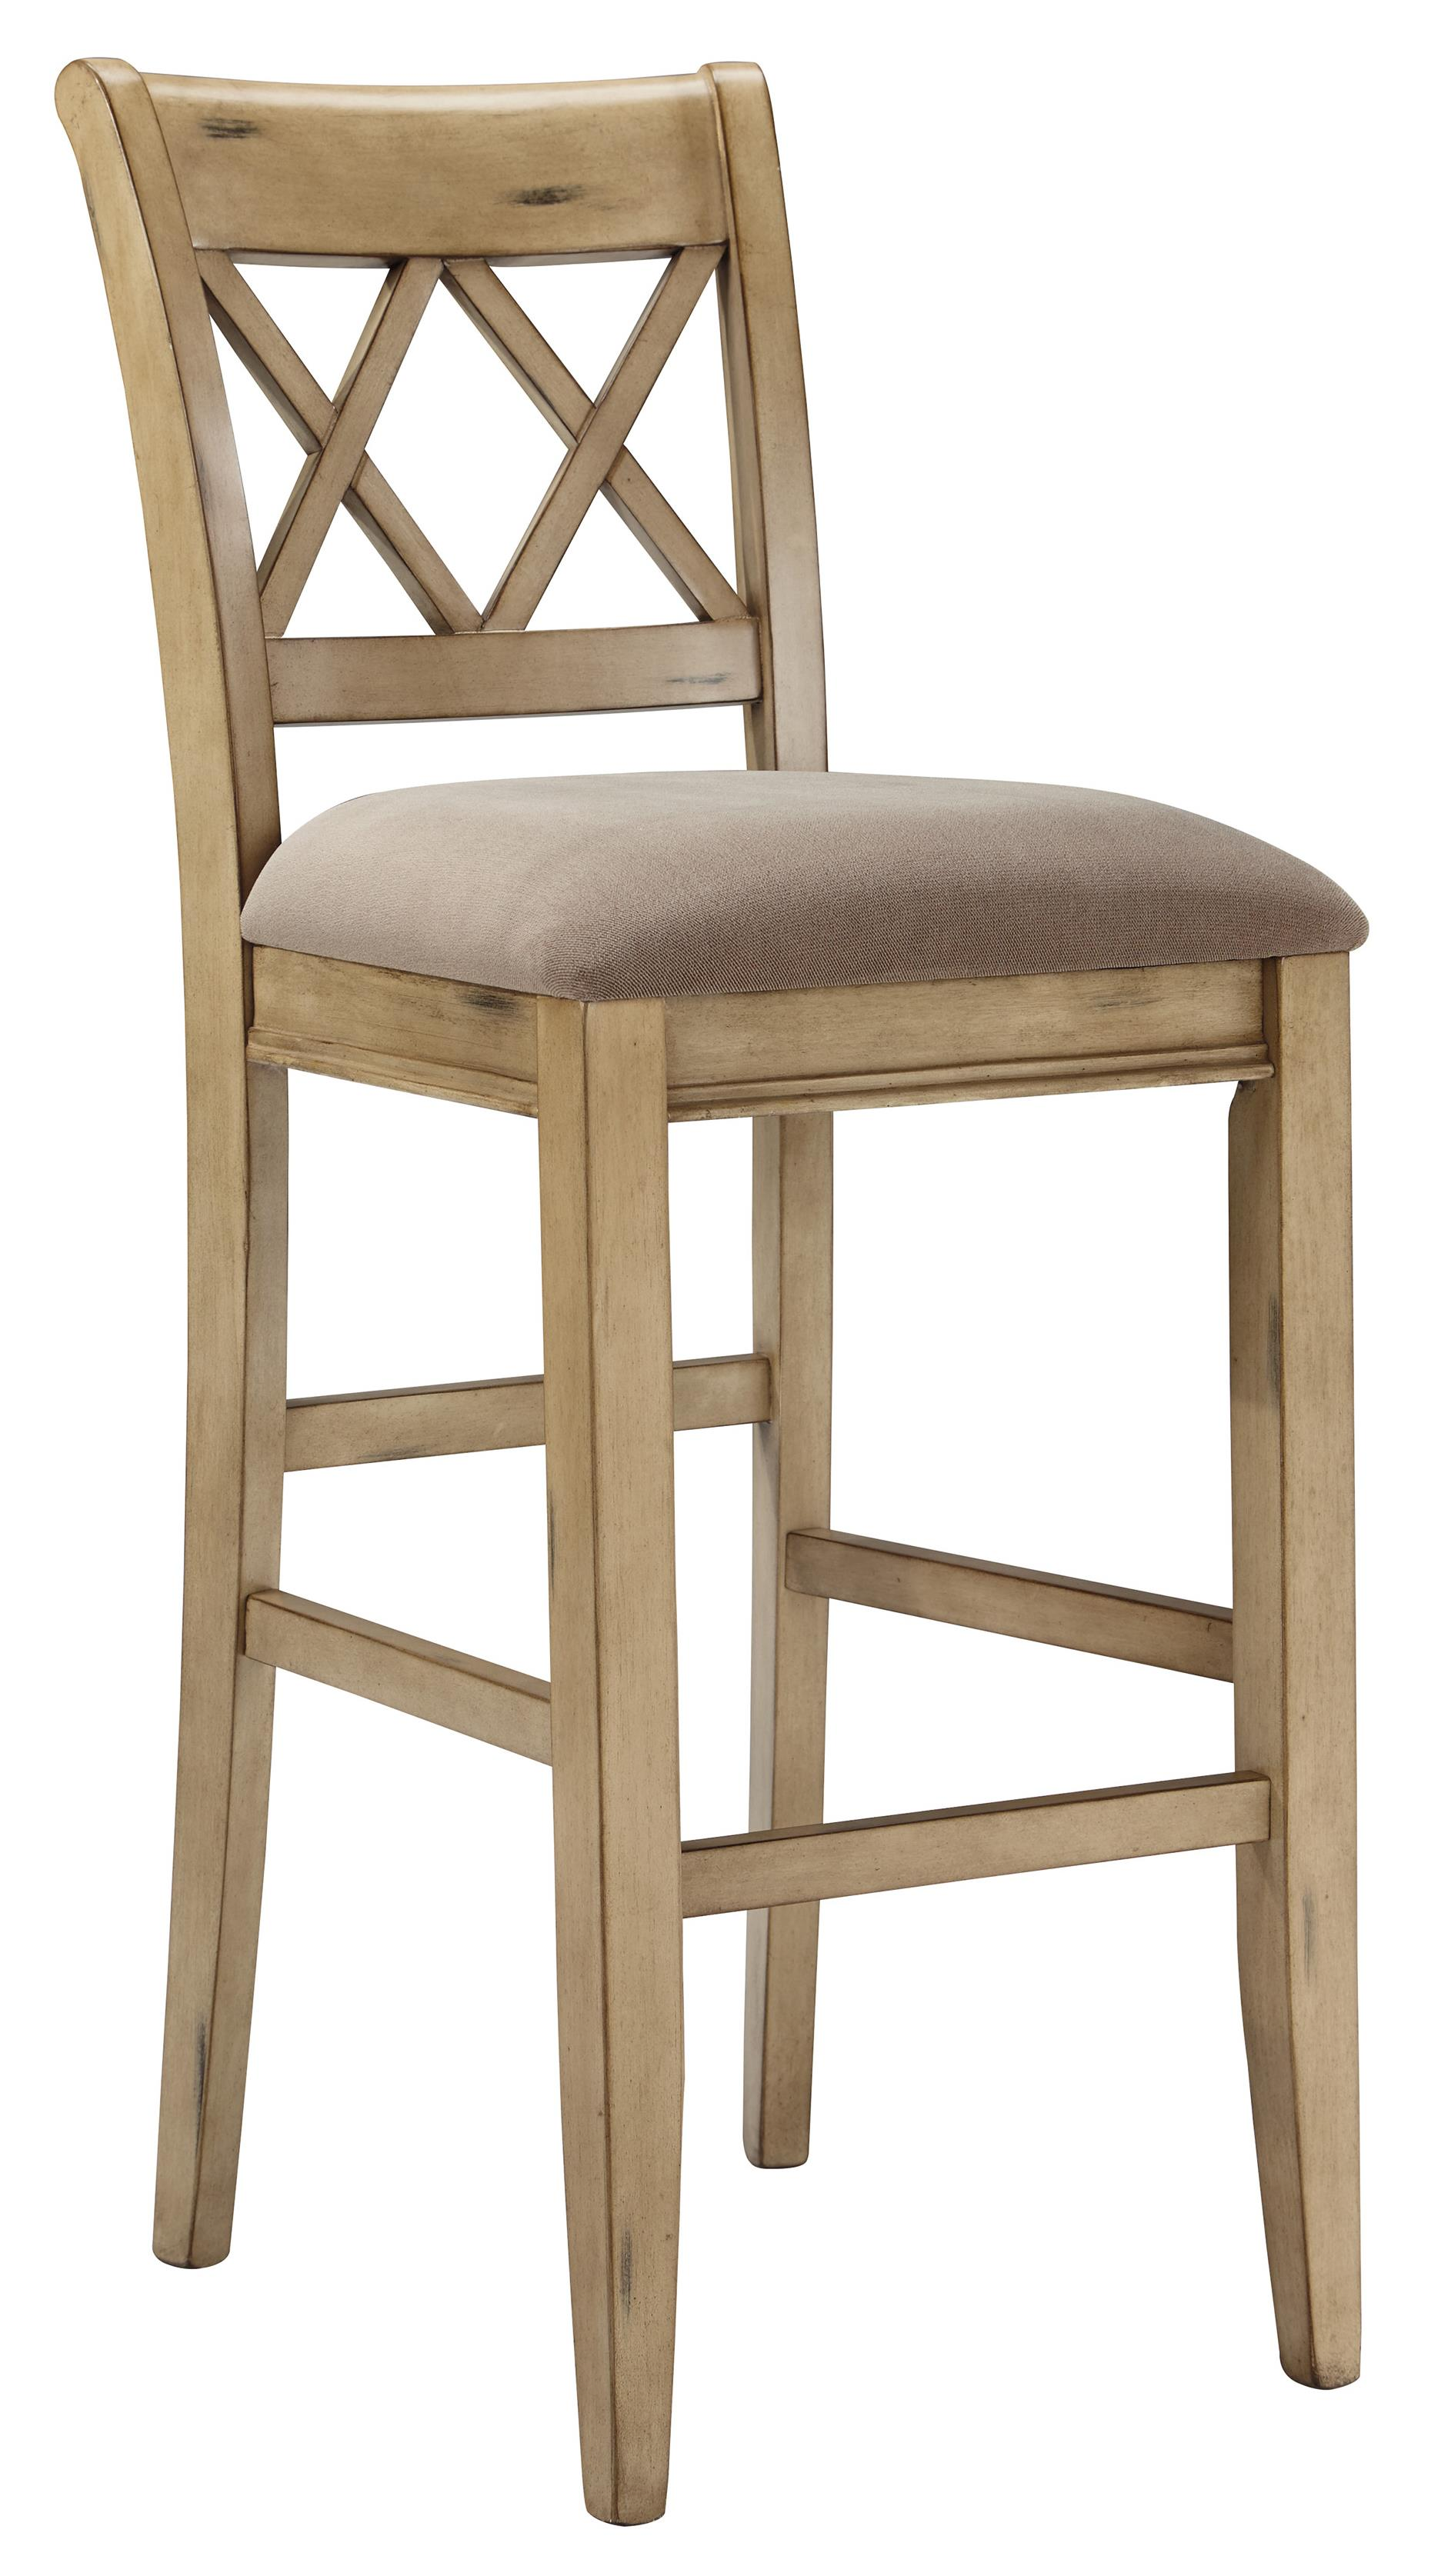 Signature Design by Ashley Mestler Tall Upholstered Barstool - Item Number: D540-230